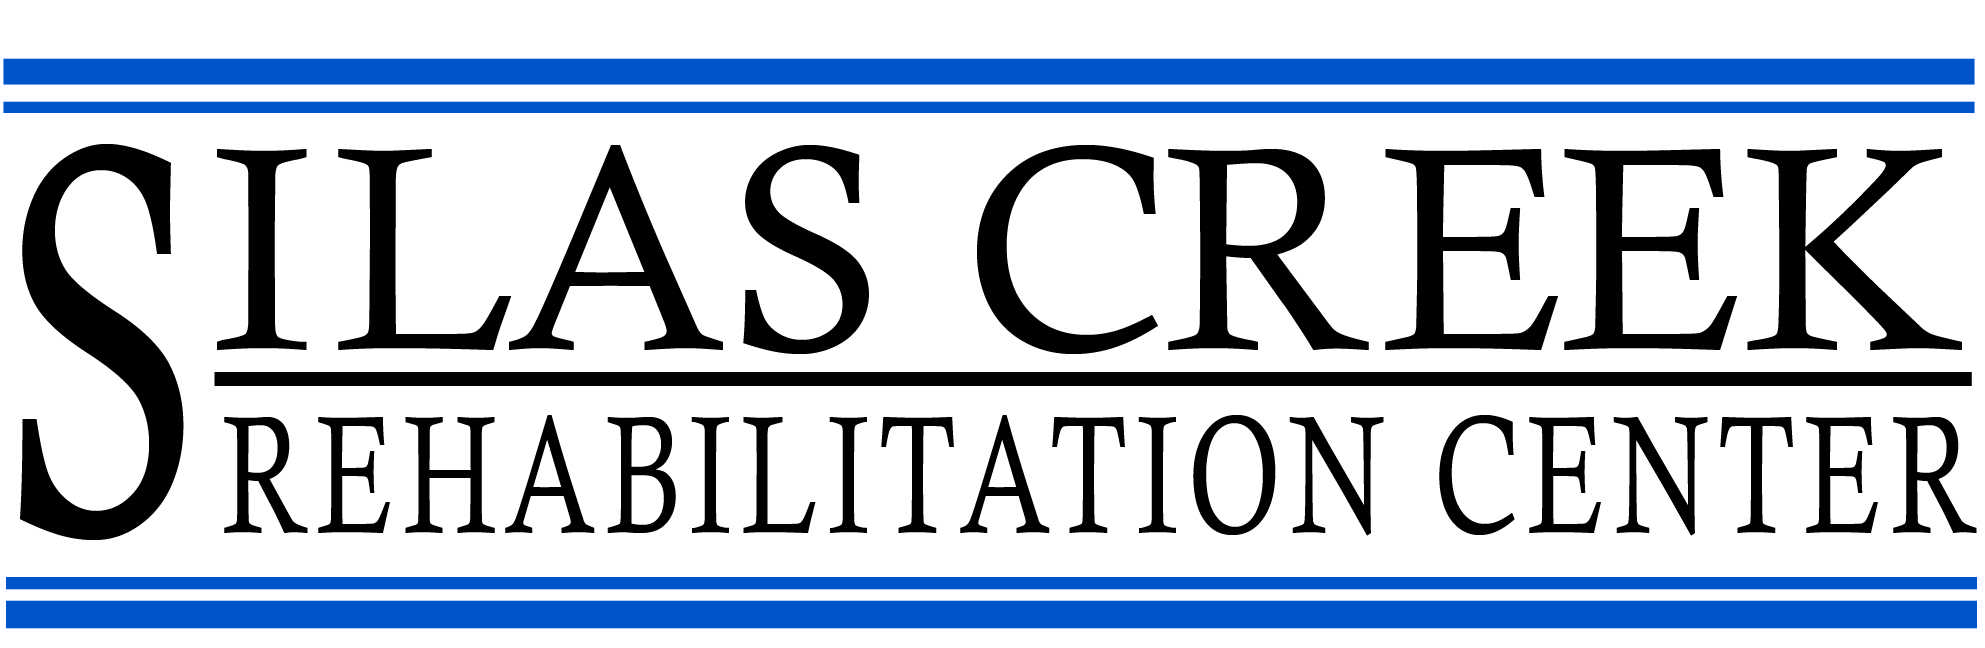 Silas Creek Rehabilitation Center